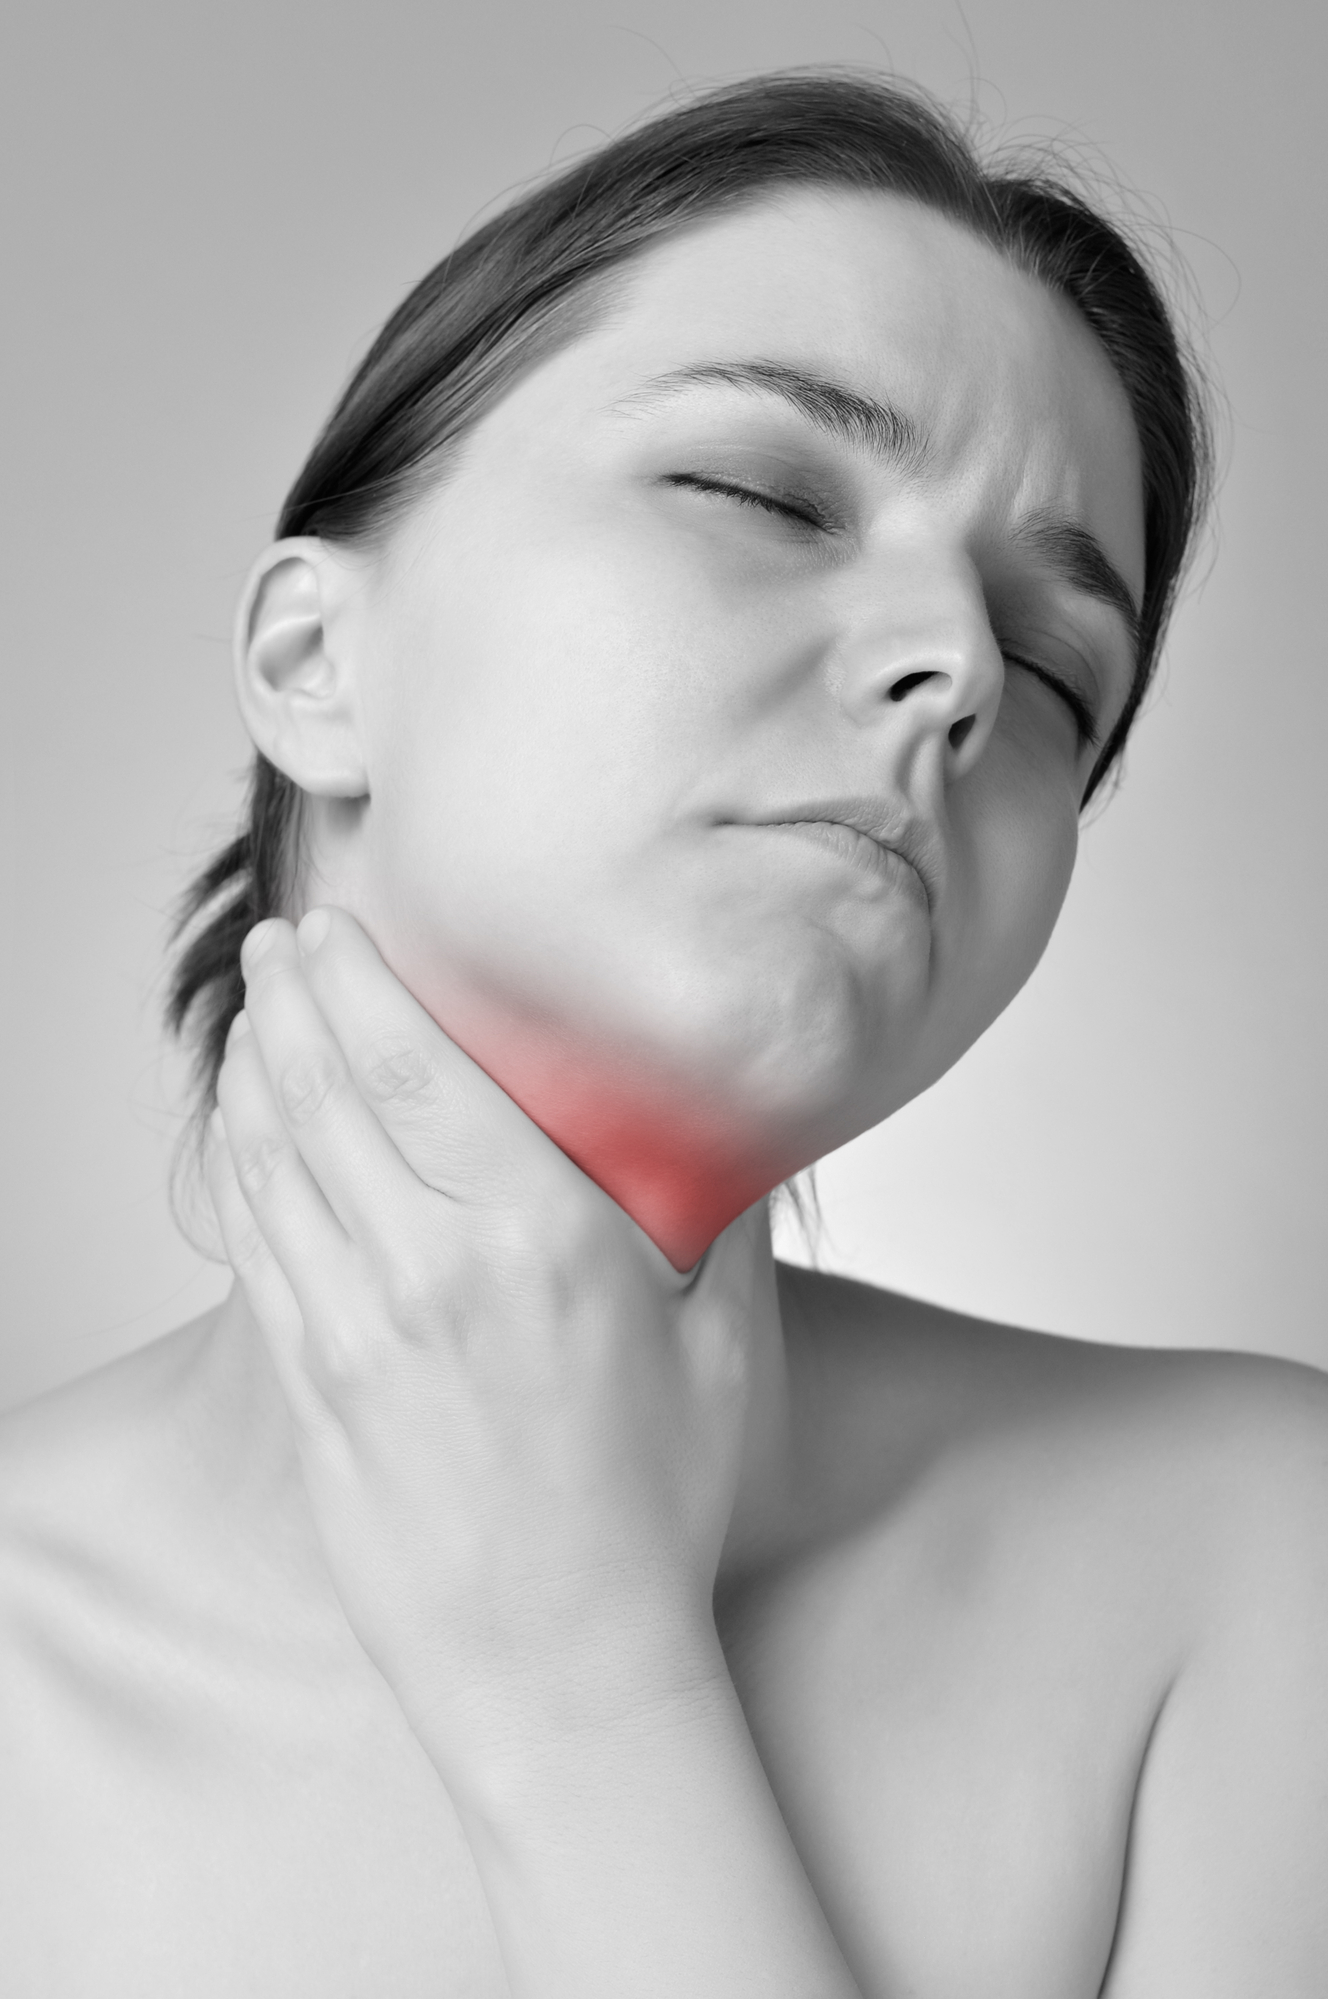 symptoms and signs of thyroid nodules